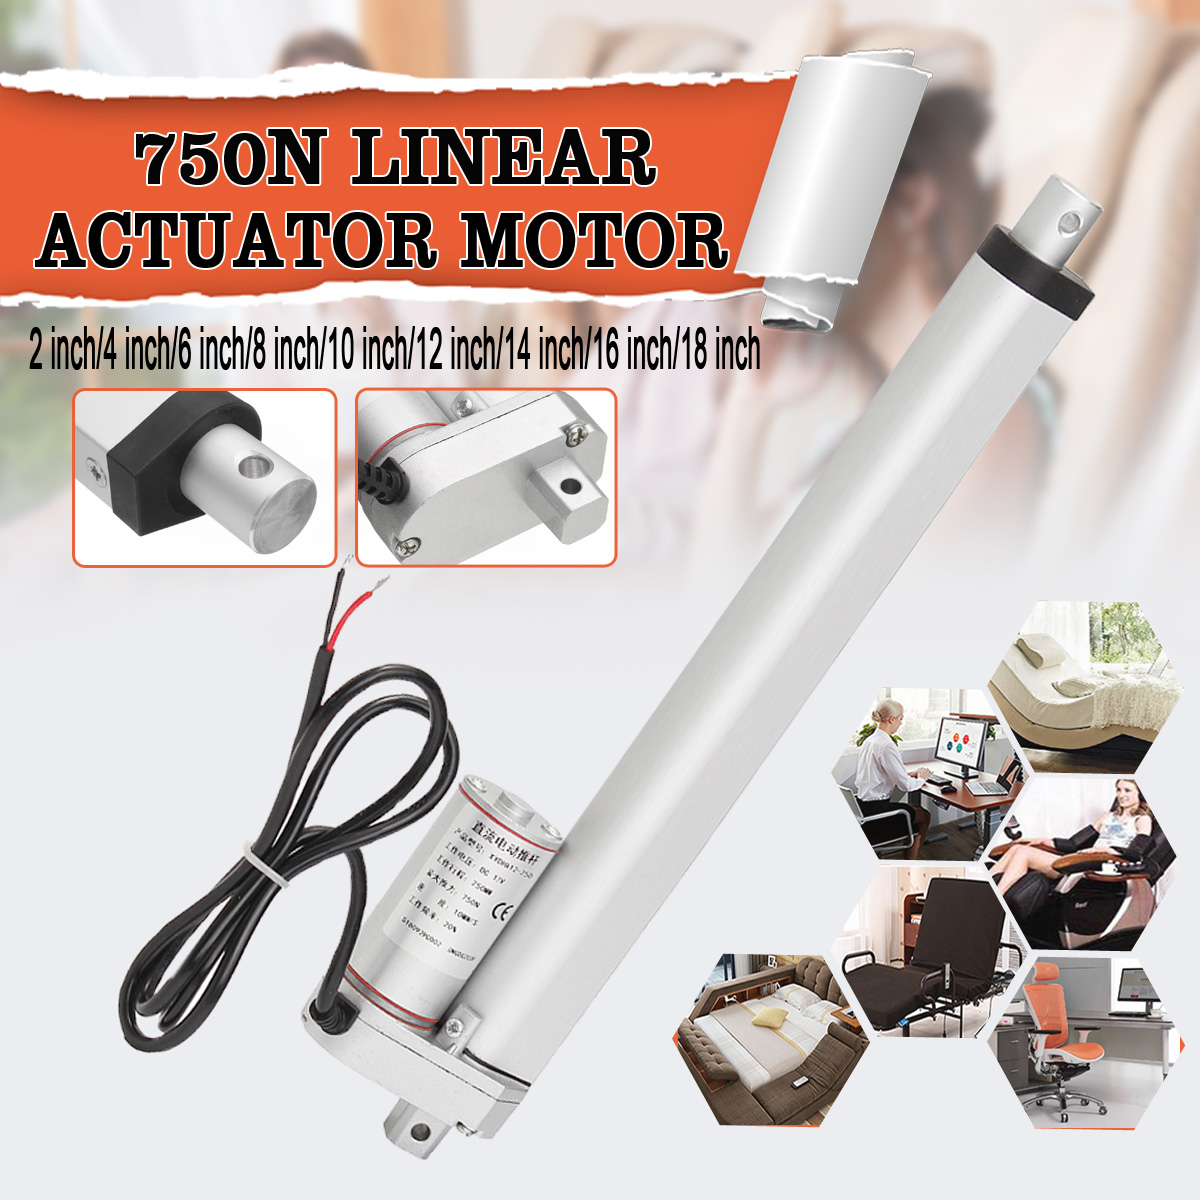 Buy Linear Actuator And Get Free Shipping On 24 Volt Wiring